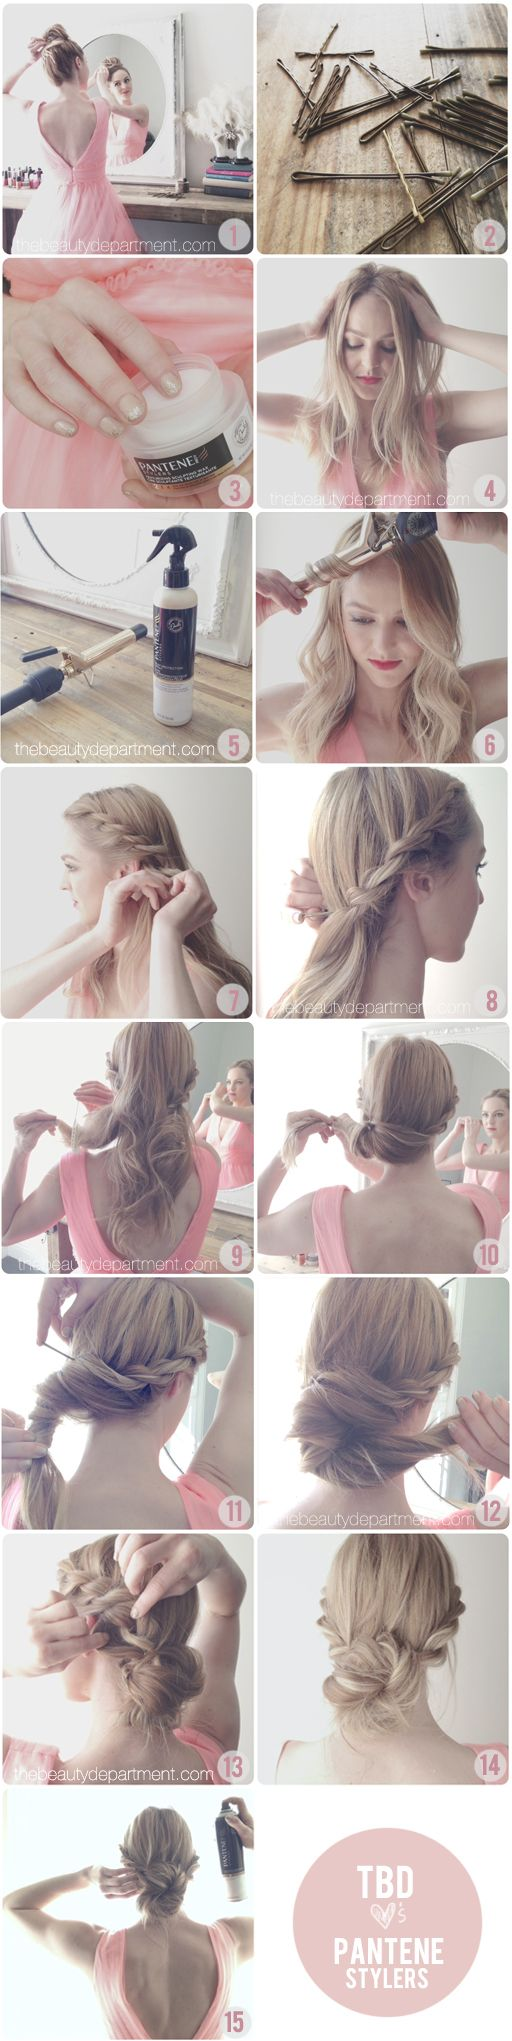 How to master the rope braid chignon with a little help from Pantene's new Stylers line! --- since I clearly and unfortunately dont know how to braid my own hair